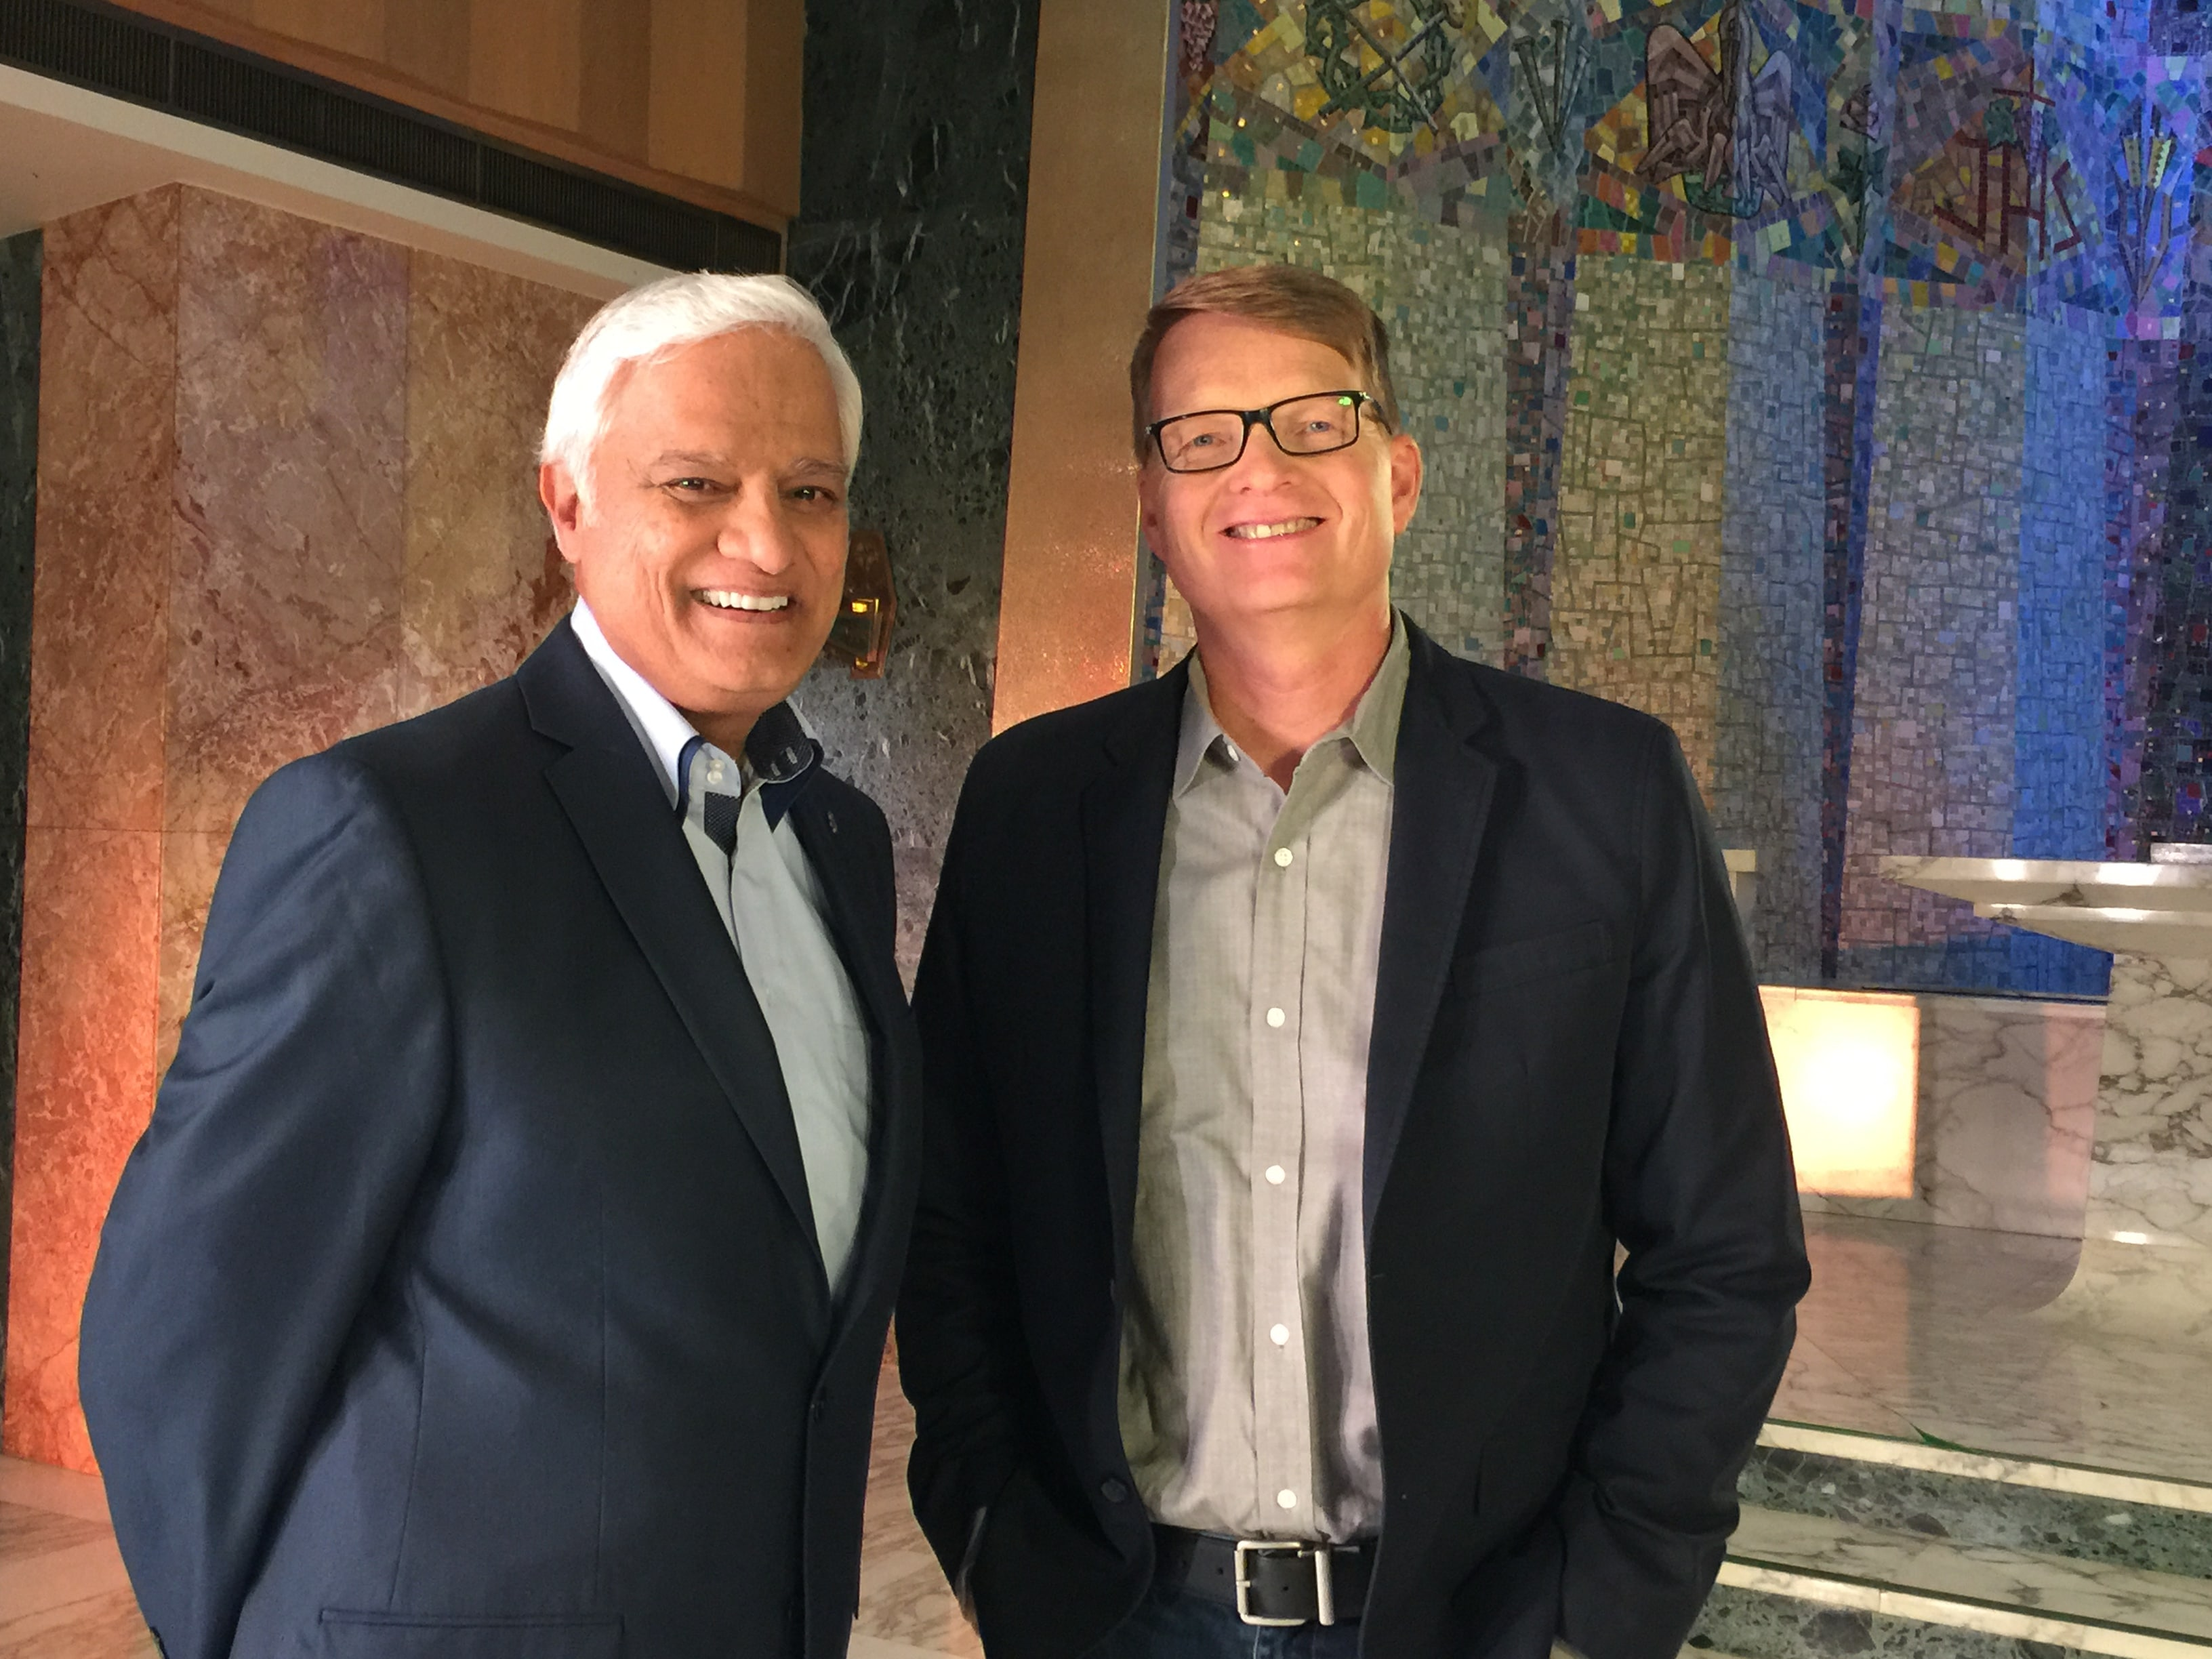 Ravi Zacharias and Carey Nieuwhof